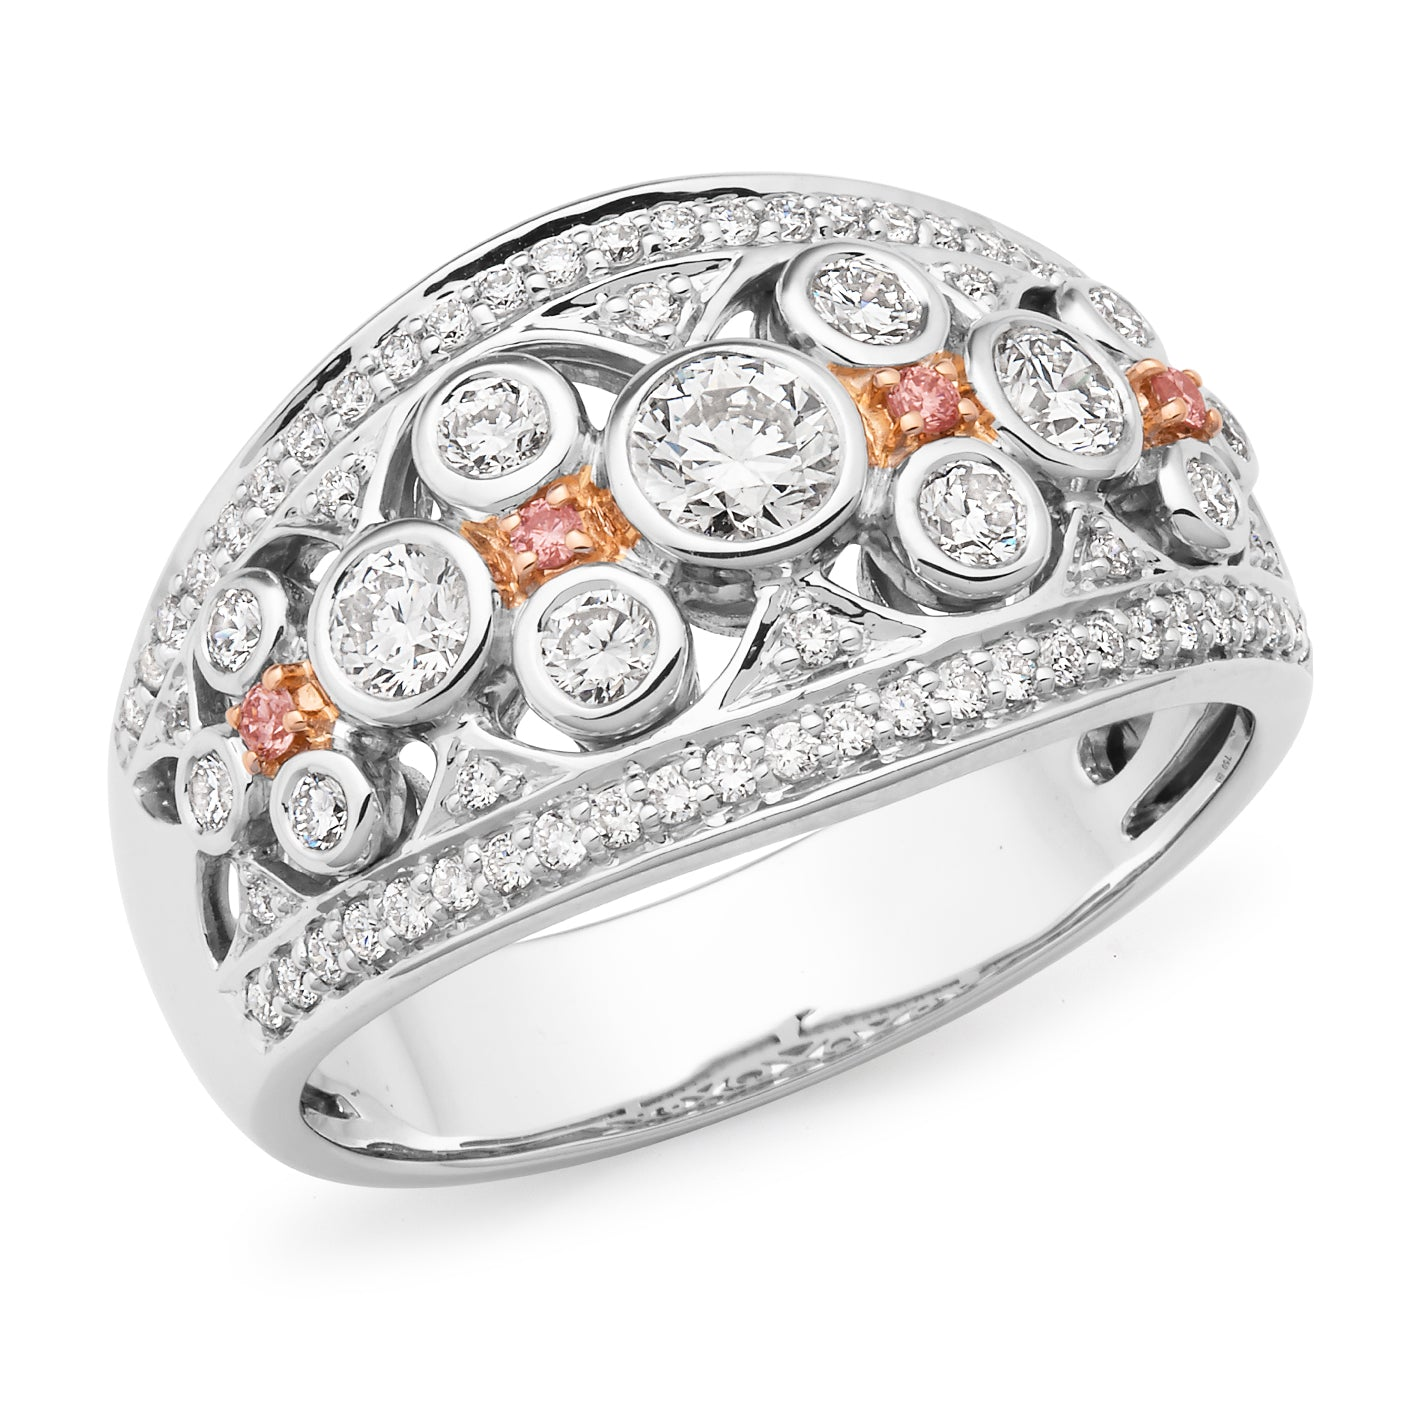 DIAMOND BEZEL/BEAD SET RING PINK CAVIAR IN 9CT WHITE & ROSE GOLD (SI3 JK)  TDW 0.99CT